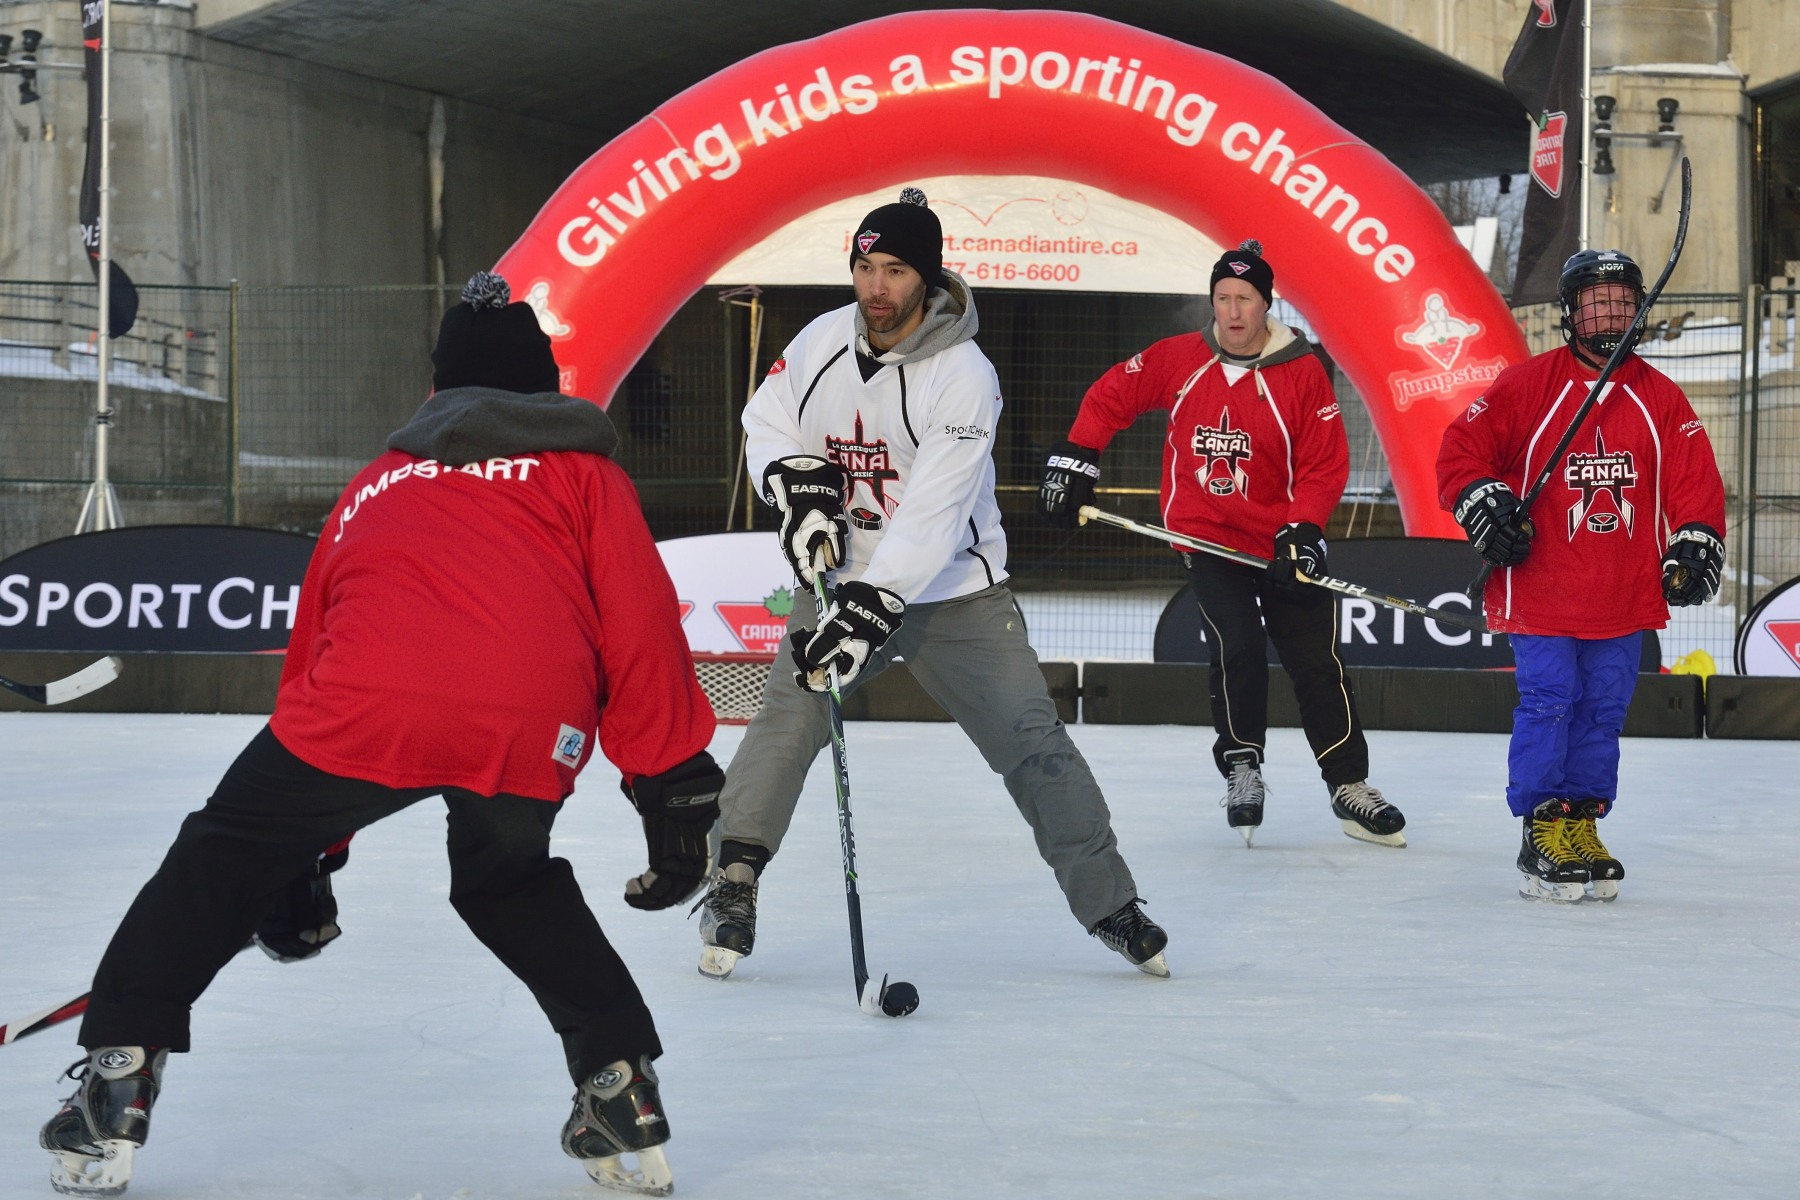 The teams were composed of Parliamentarians, NHL and Olympic alumni, members of the media, and representatives from Jumpstart, Canadian Tire and Sport Chek.